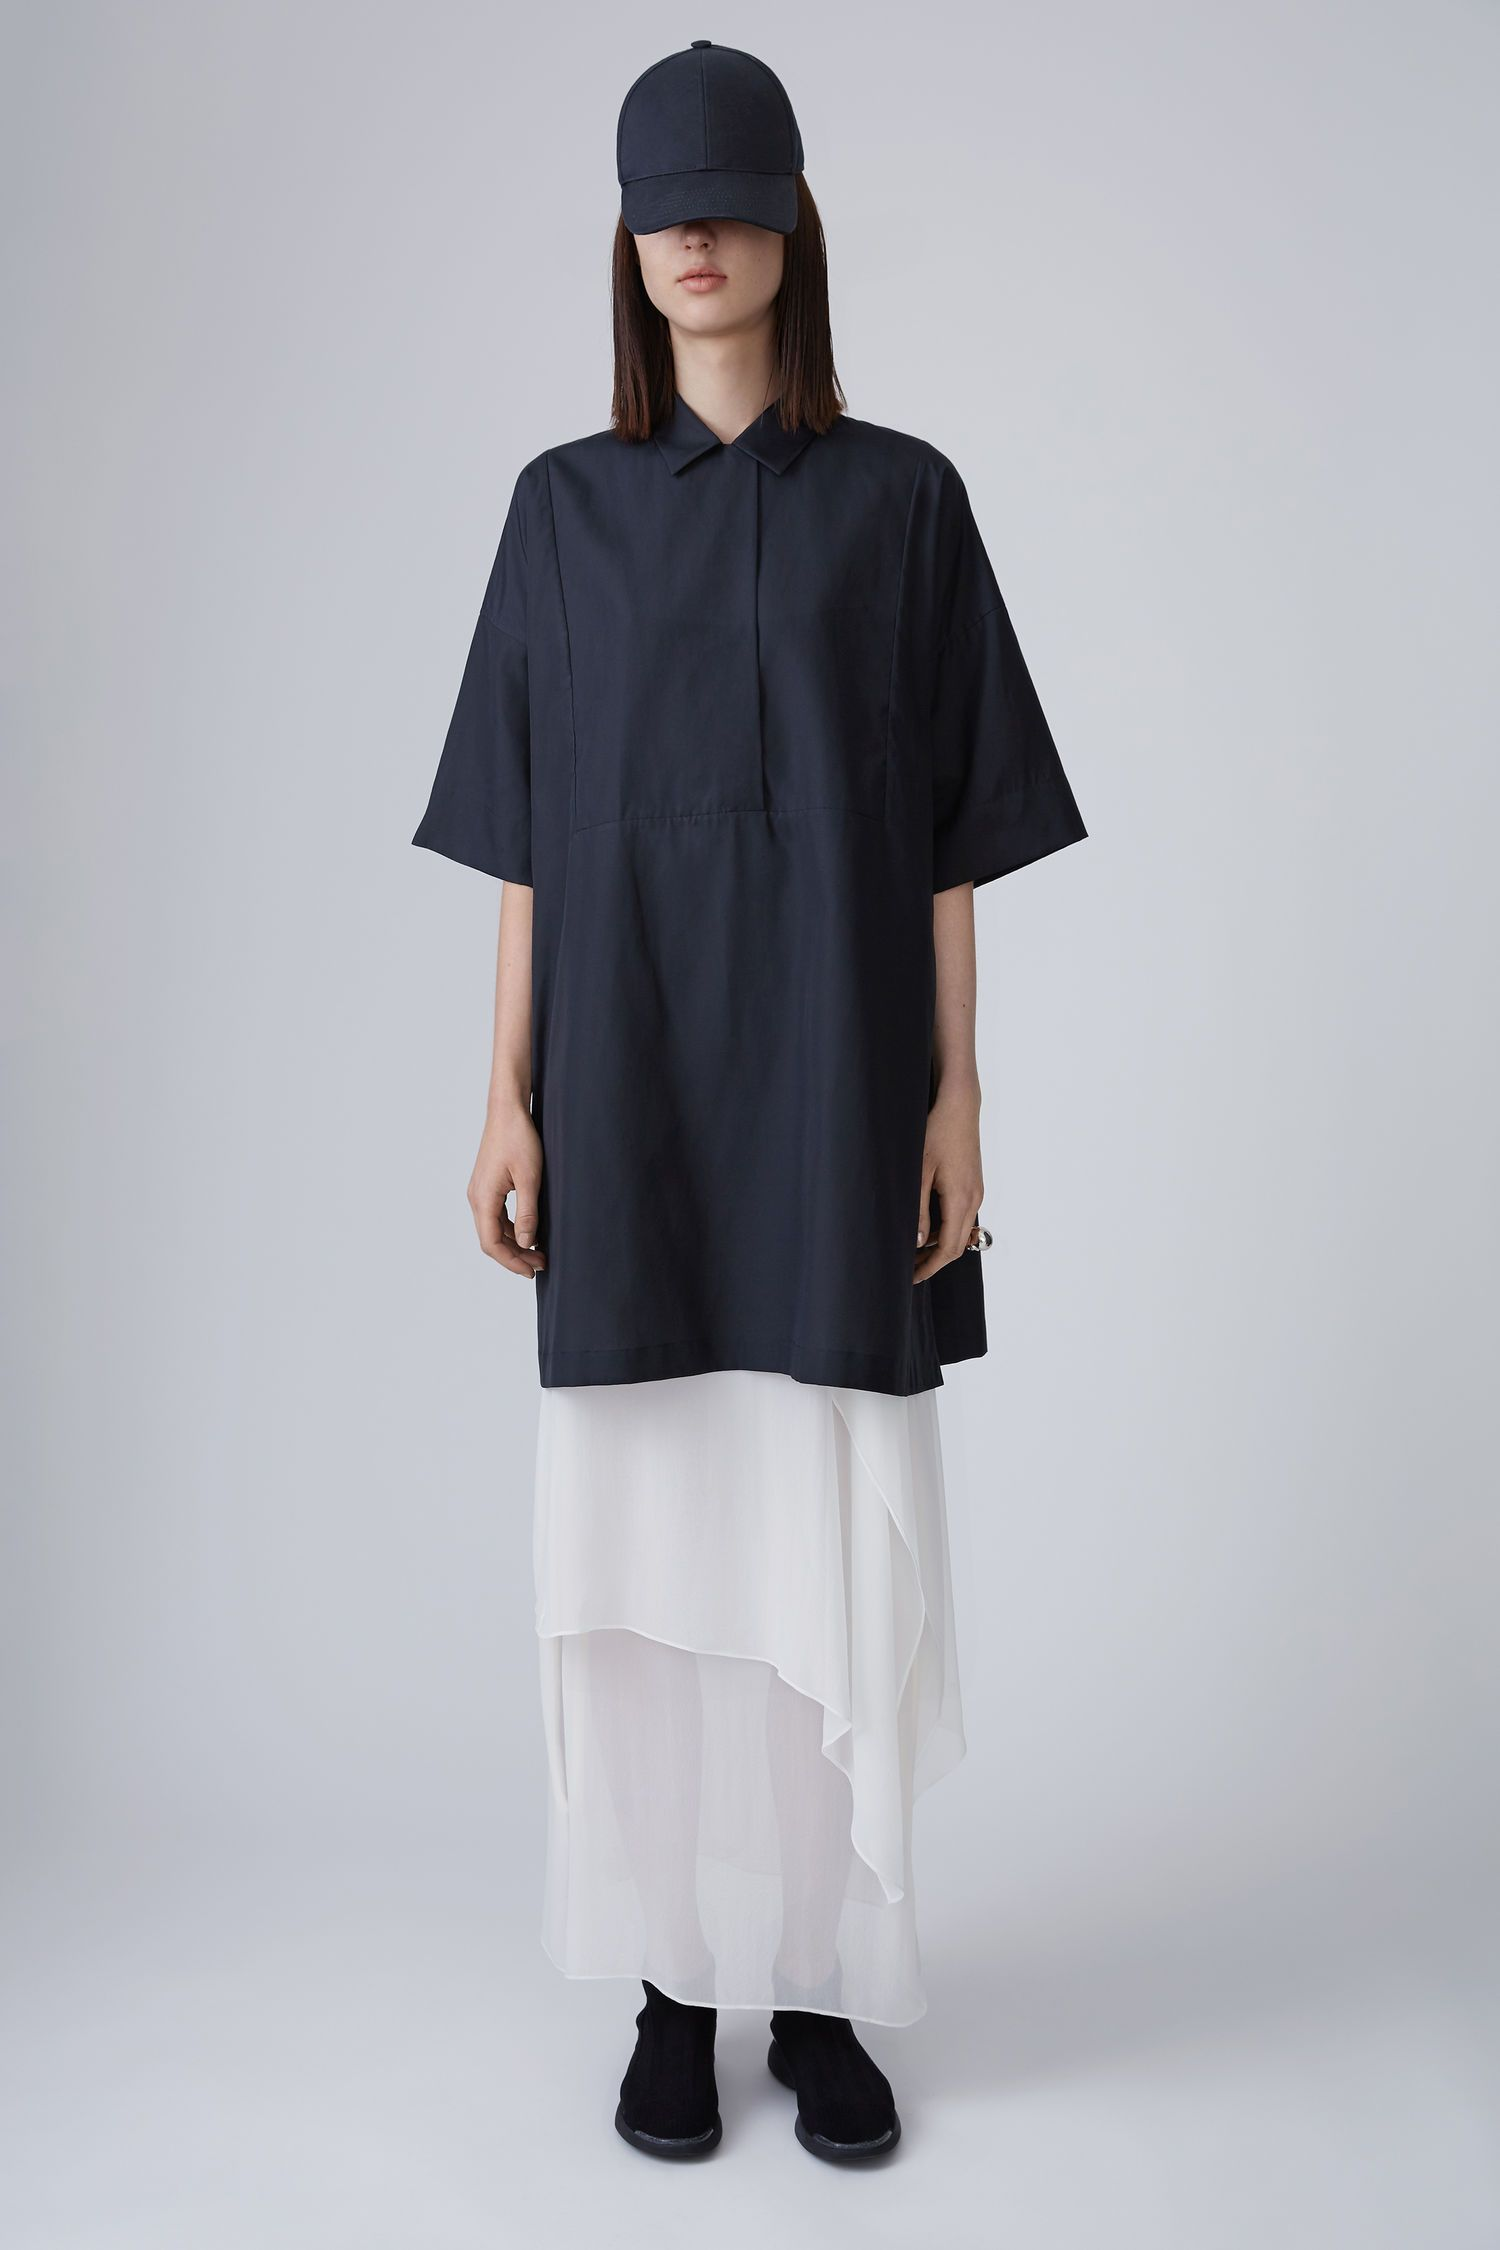 ACNE STUDIOS Sena Dry Pop   Black. #acnestudios #cloth #